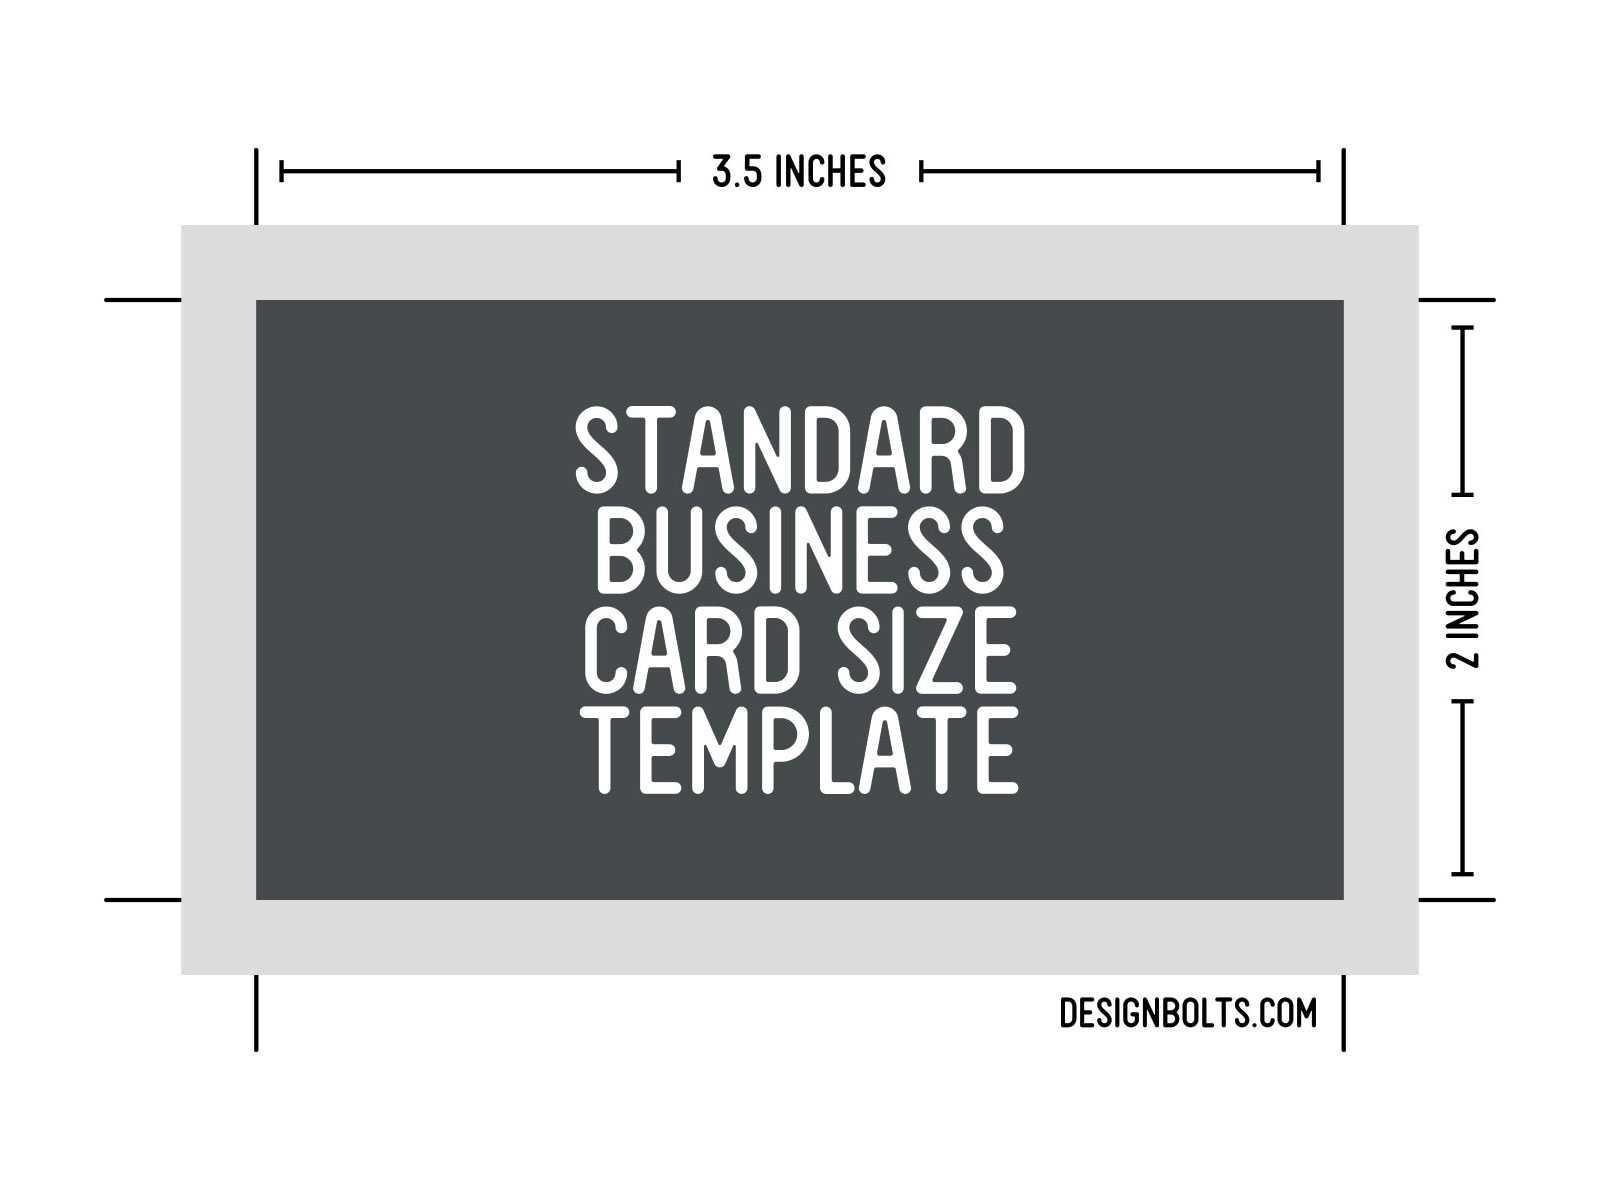 10 Psd Business Card Size Images - Standard Business Card Intended For Business Card Size Template Psd